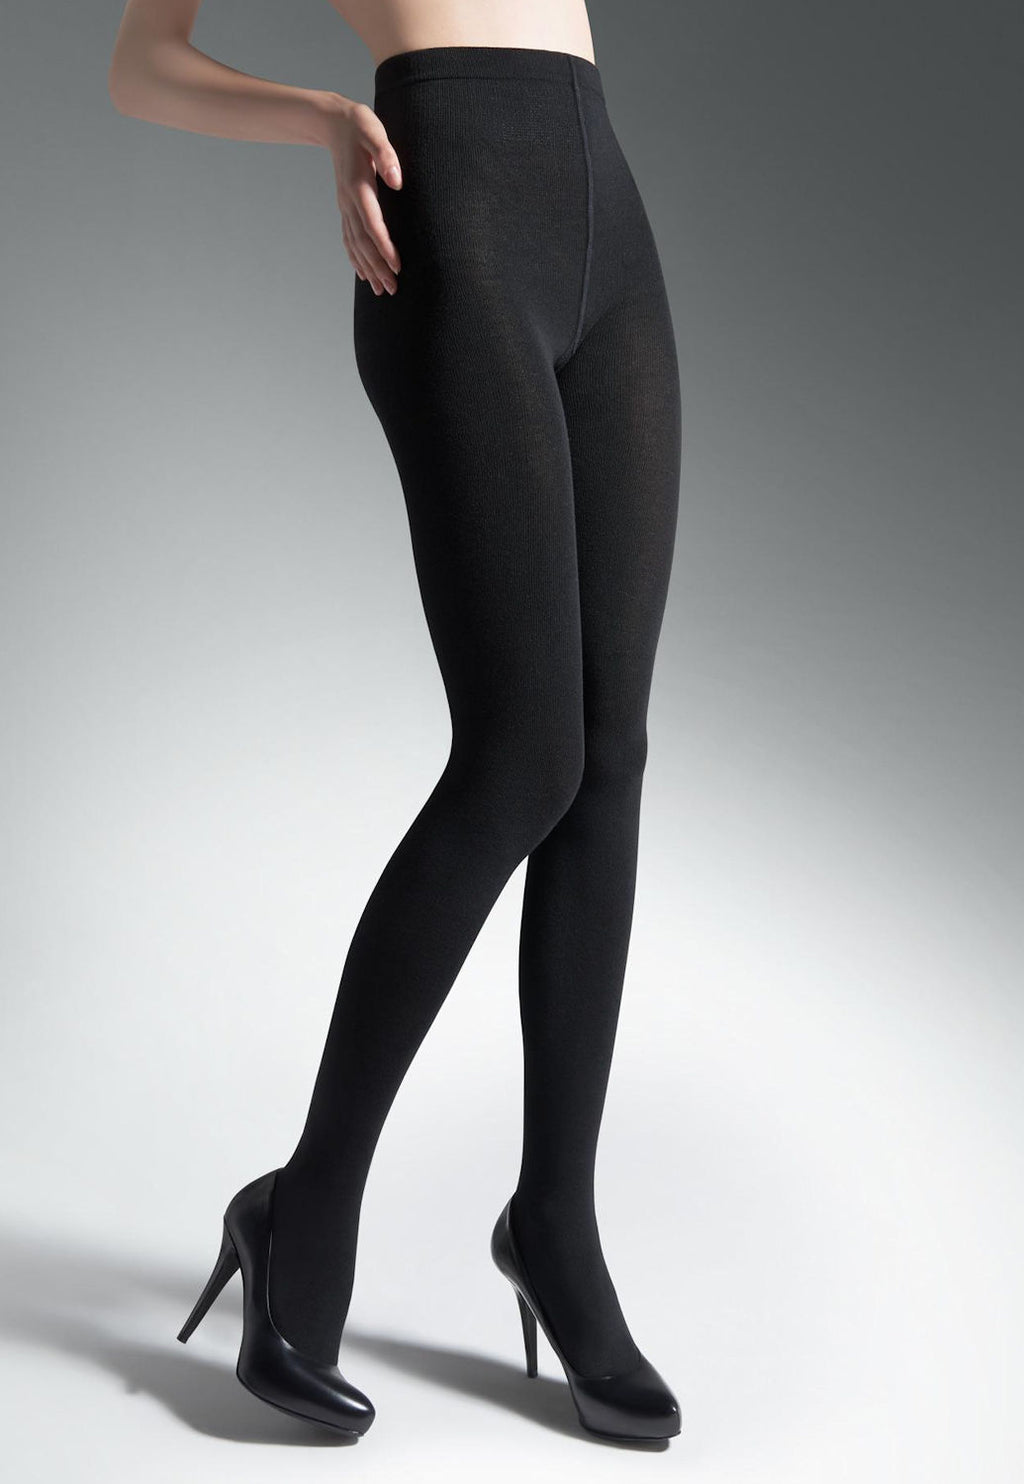 Lady Madame Cotton Rich Opaque Tights by Wola in black